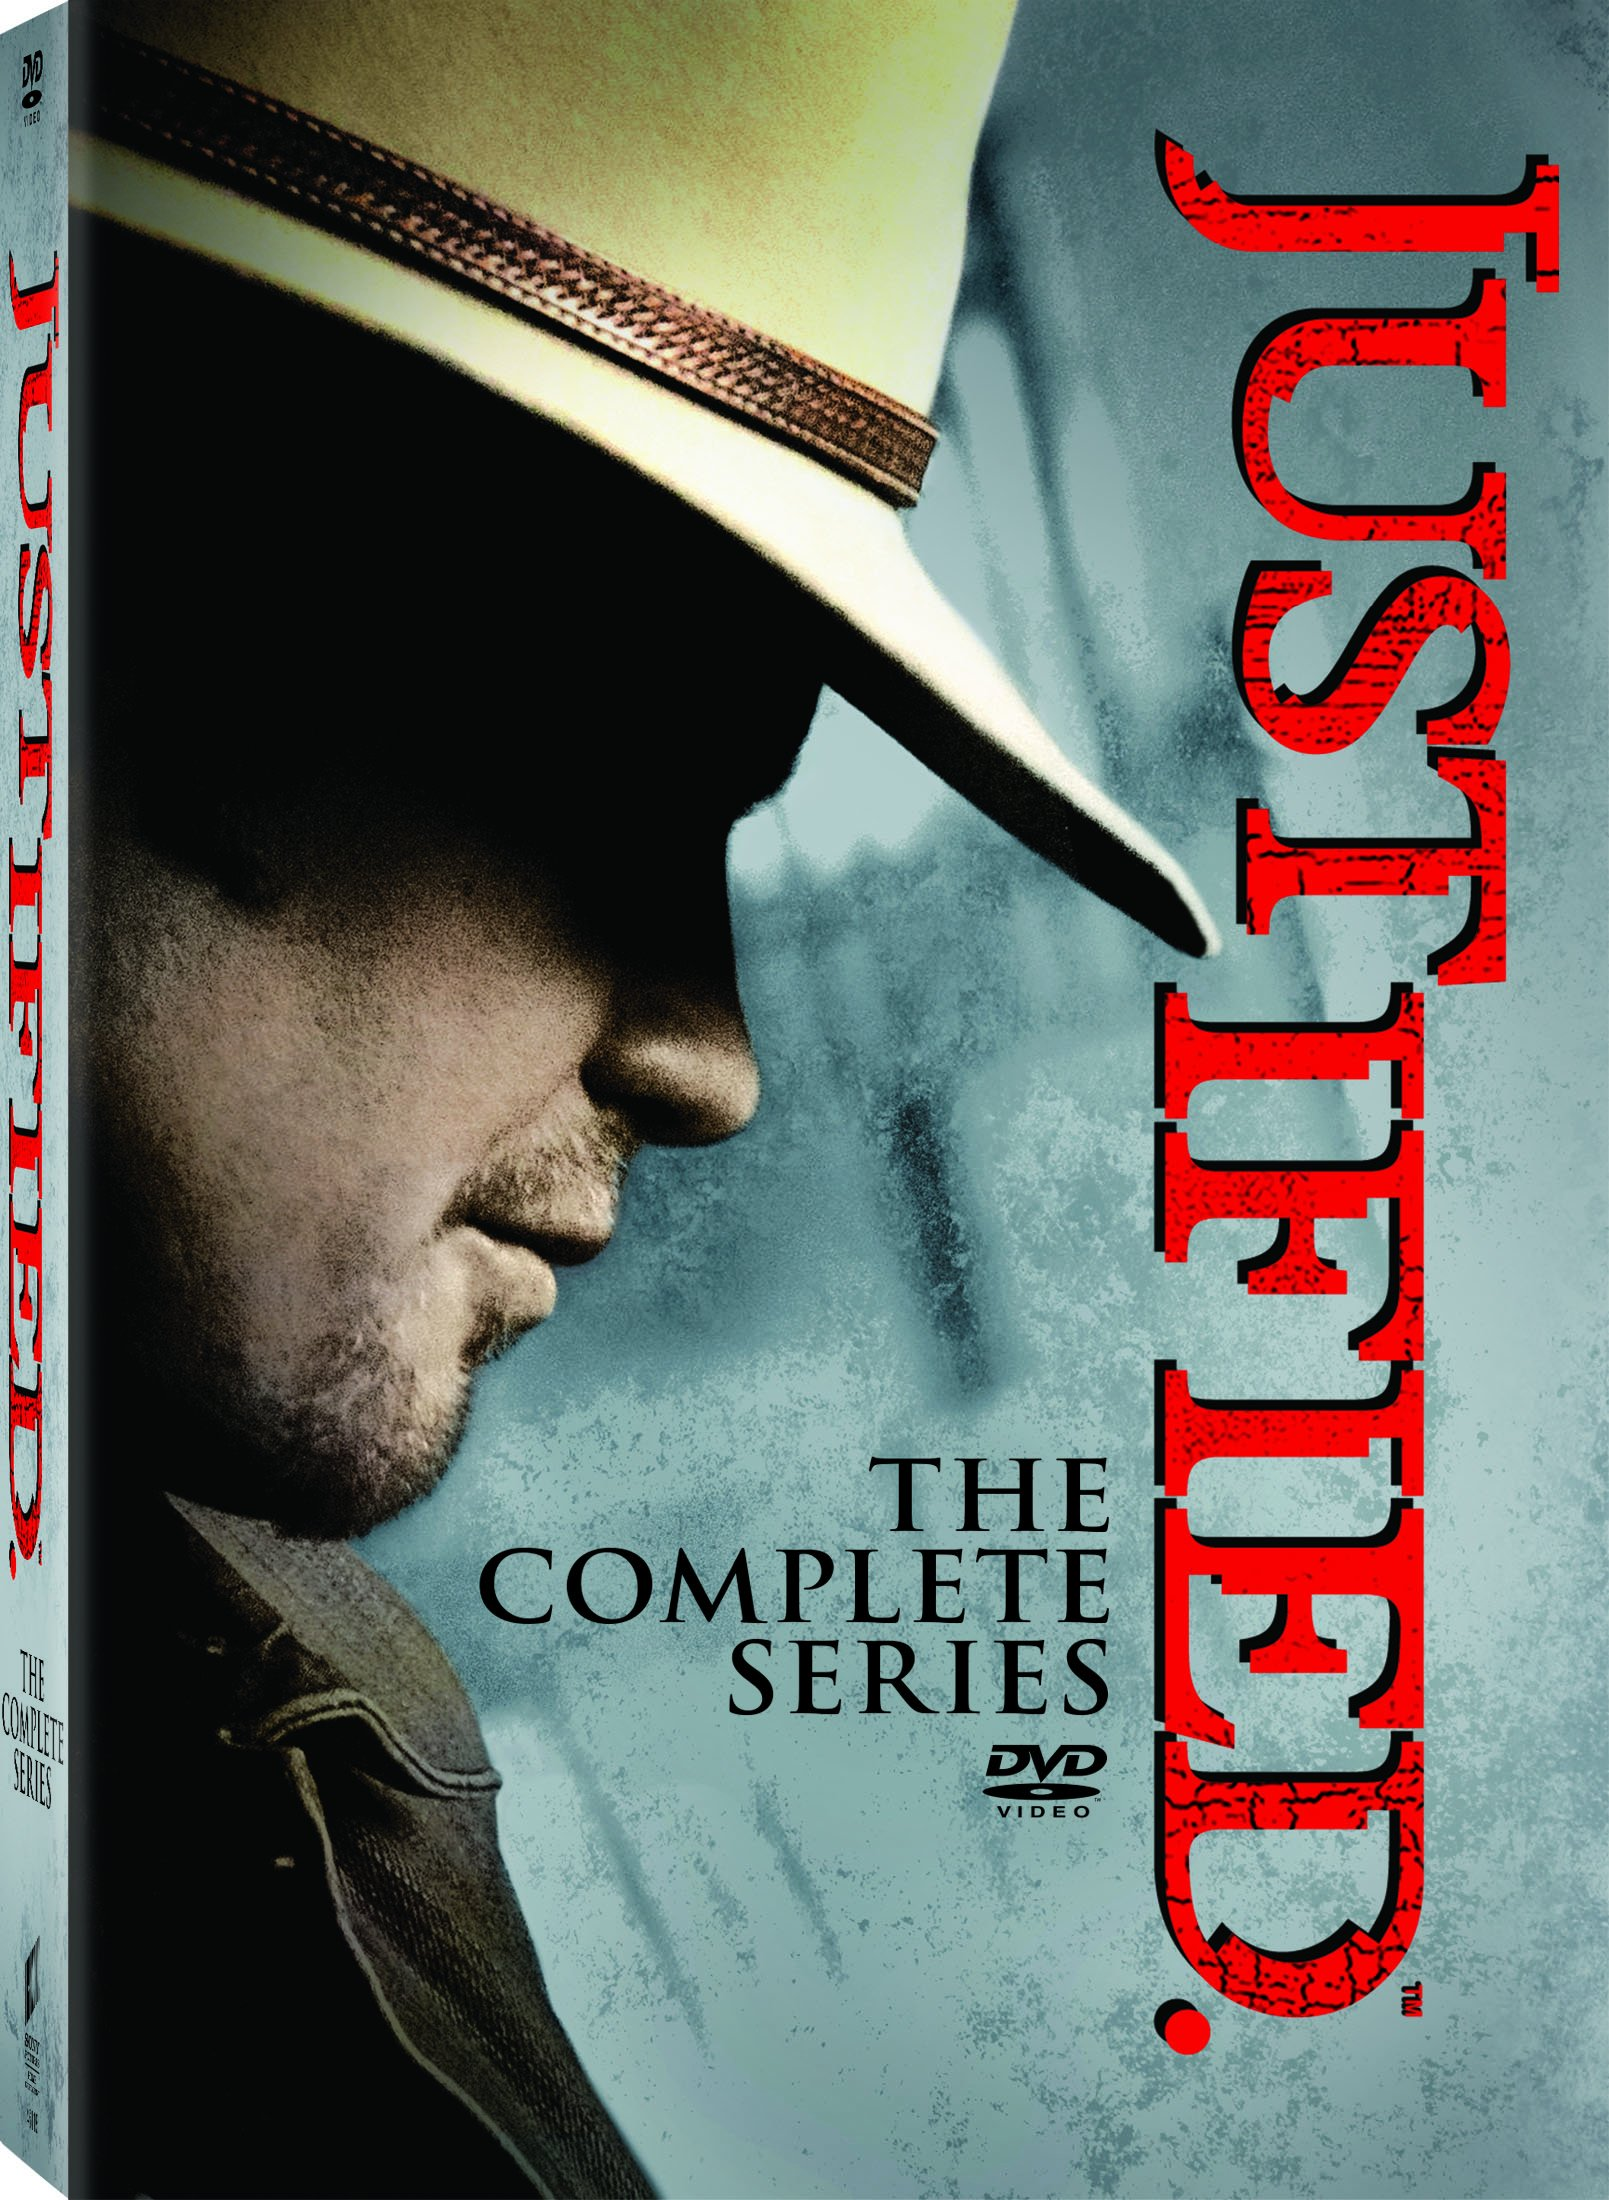 Justified: The Complete Series by Sony Pictures Home Entertainment